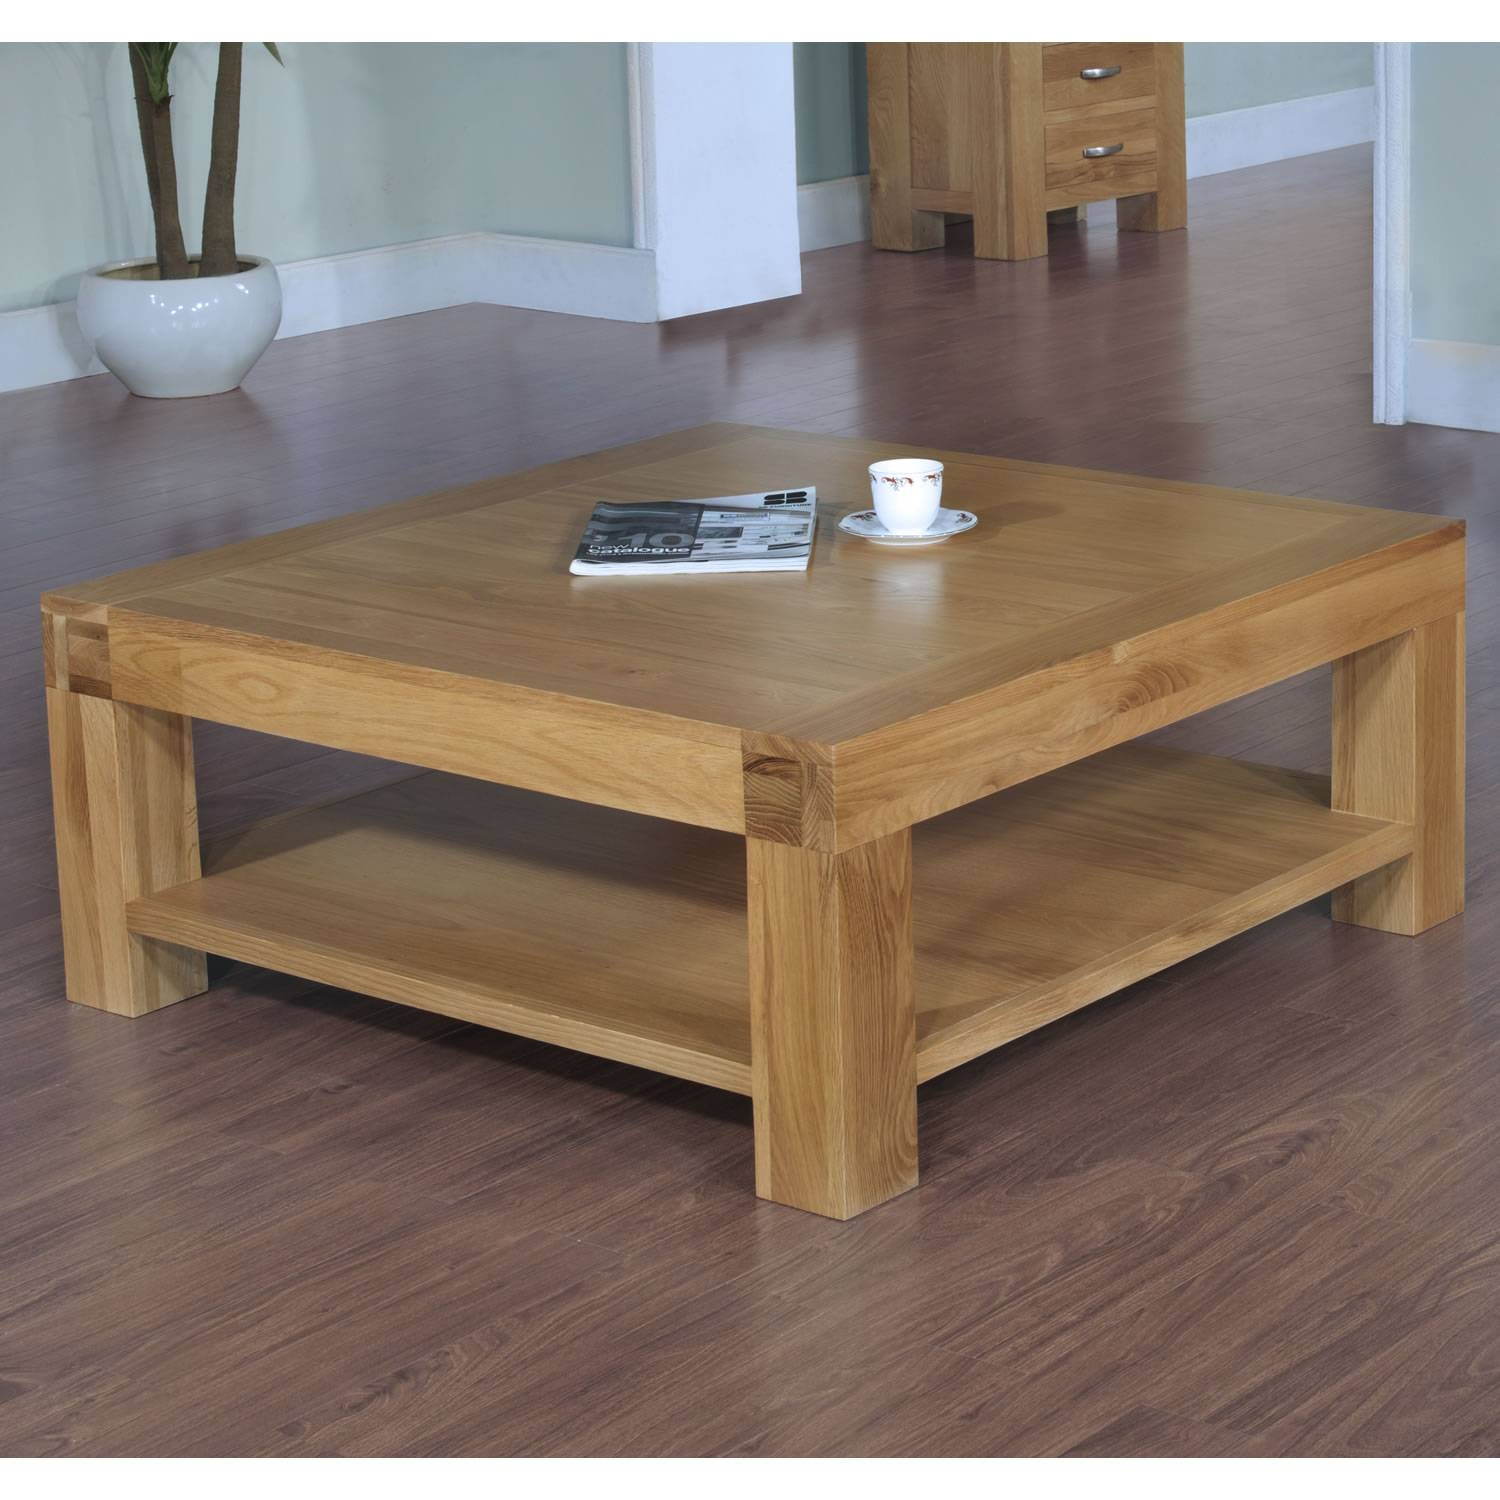 Square Coffee Table With Drawers : Helpful Square Coffee Tables regarding Square Coffee Tables With Drawers (Image 27 of 30)